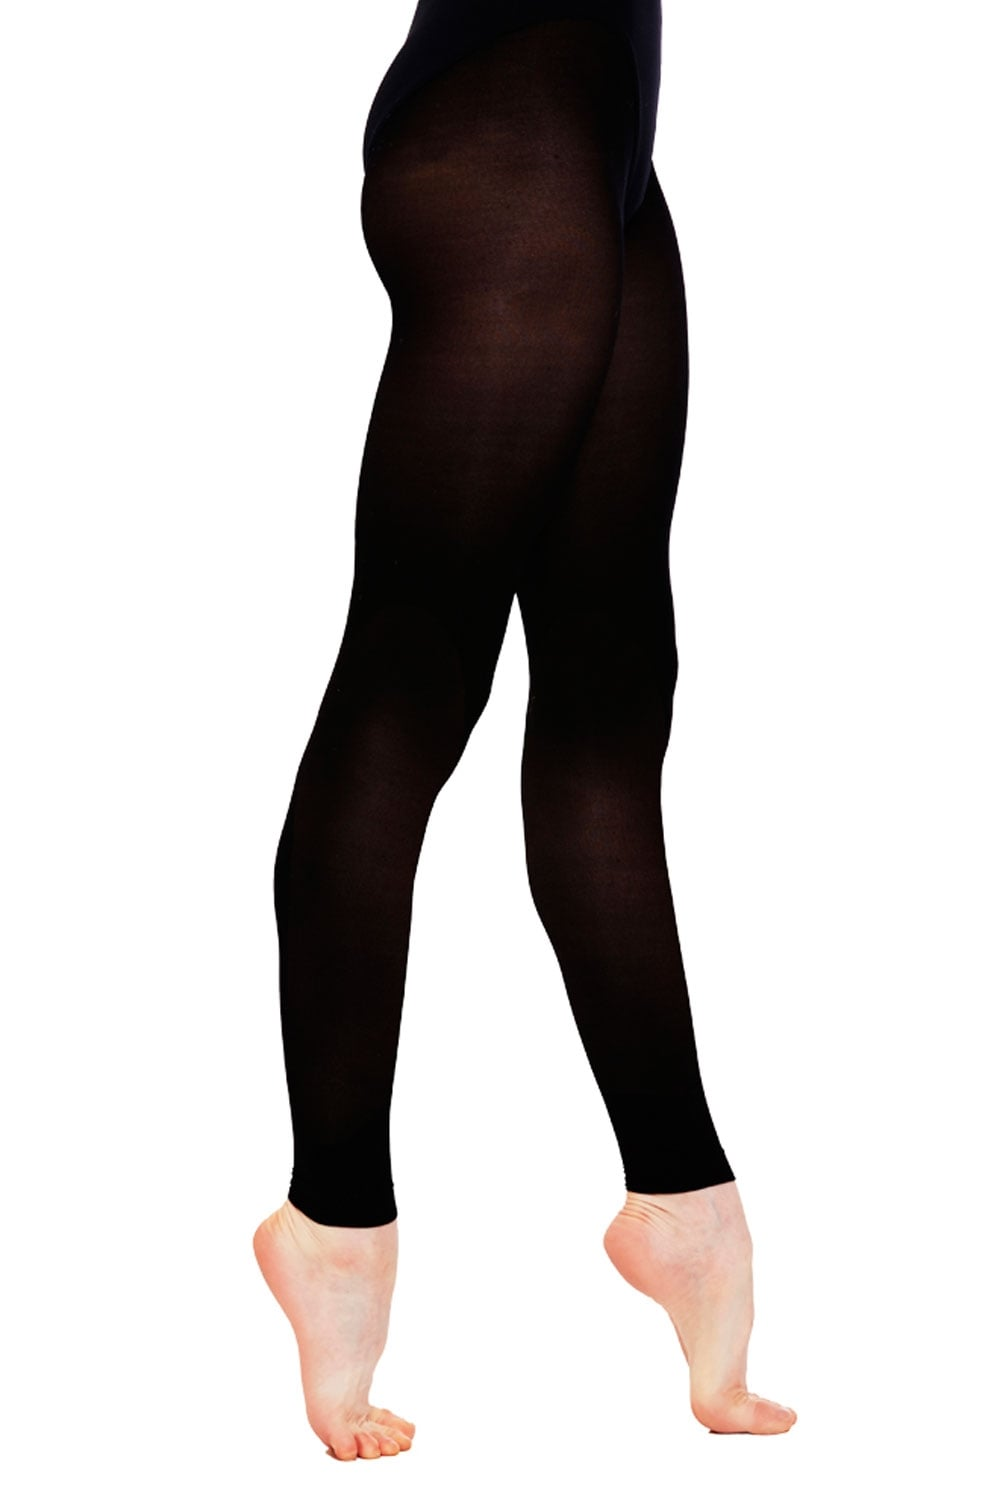 9ffbb91656bf7 Silky Footless Dance Tights Childrens Sizes